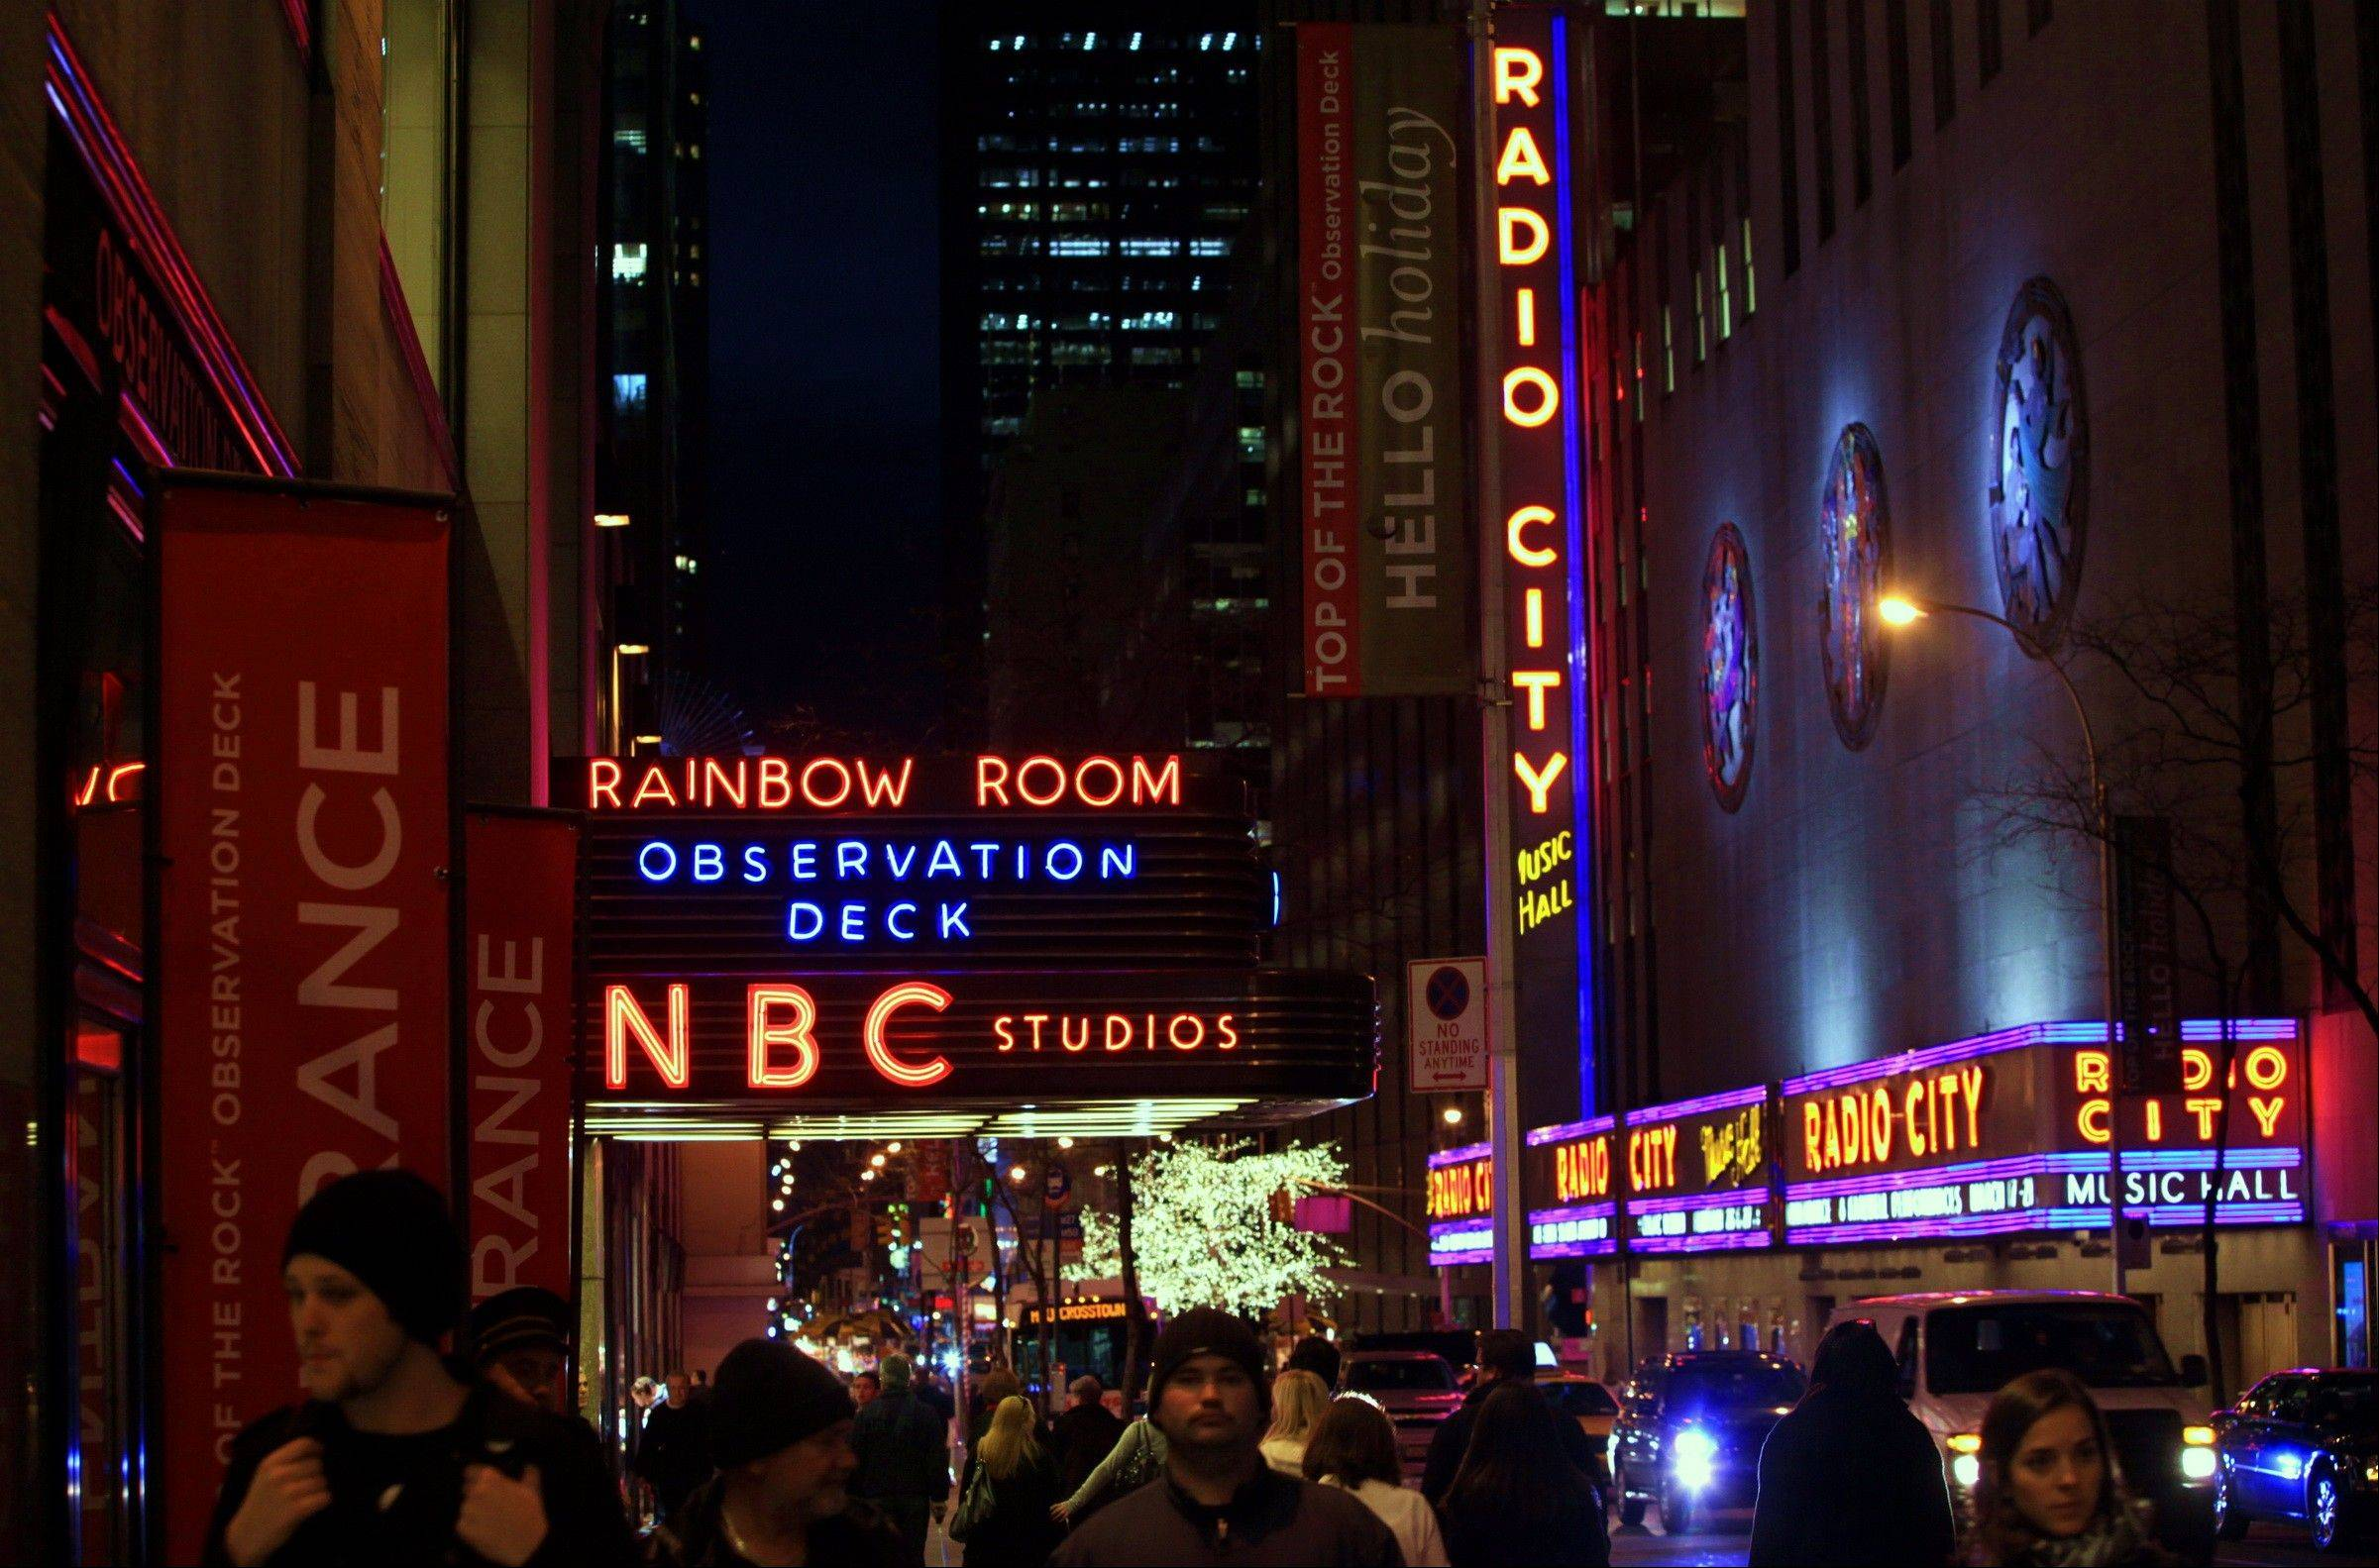 The NBC logo glows in neon lights among other iconic signs at its headquarters in New York. Comcast said Tuesday that it's buying General Electric's 49 percent stake in the NBCUniversal joint venture for $16.7 billion.